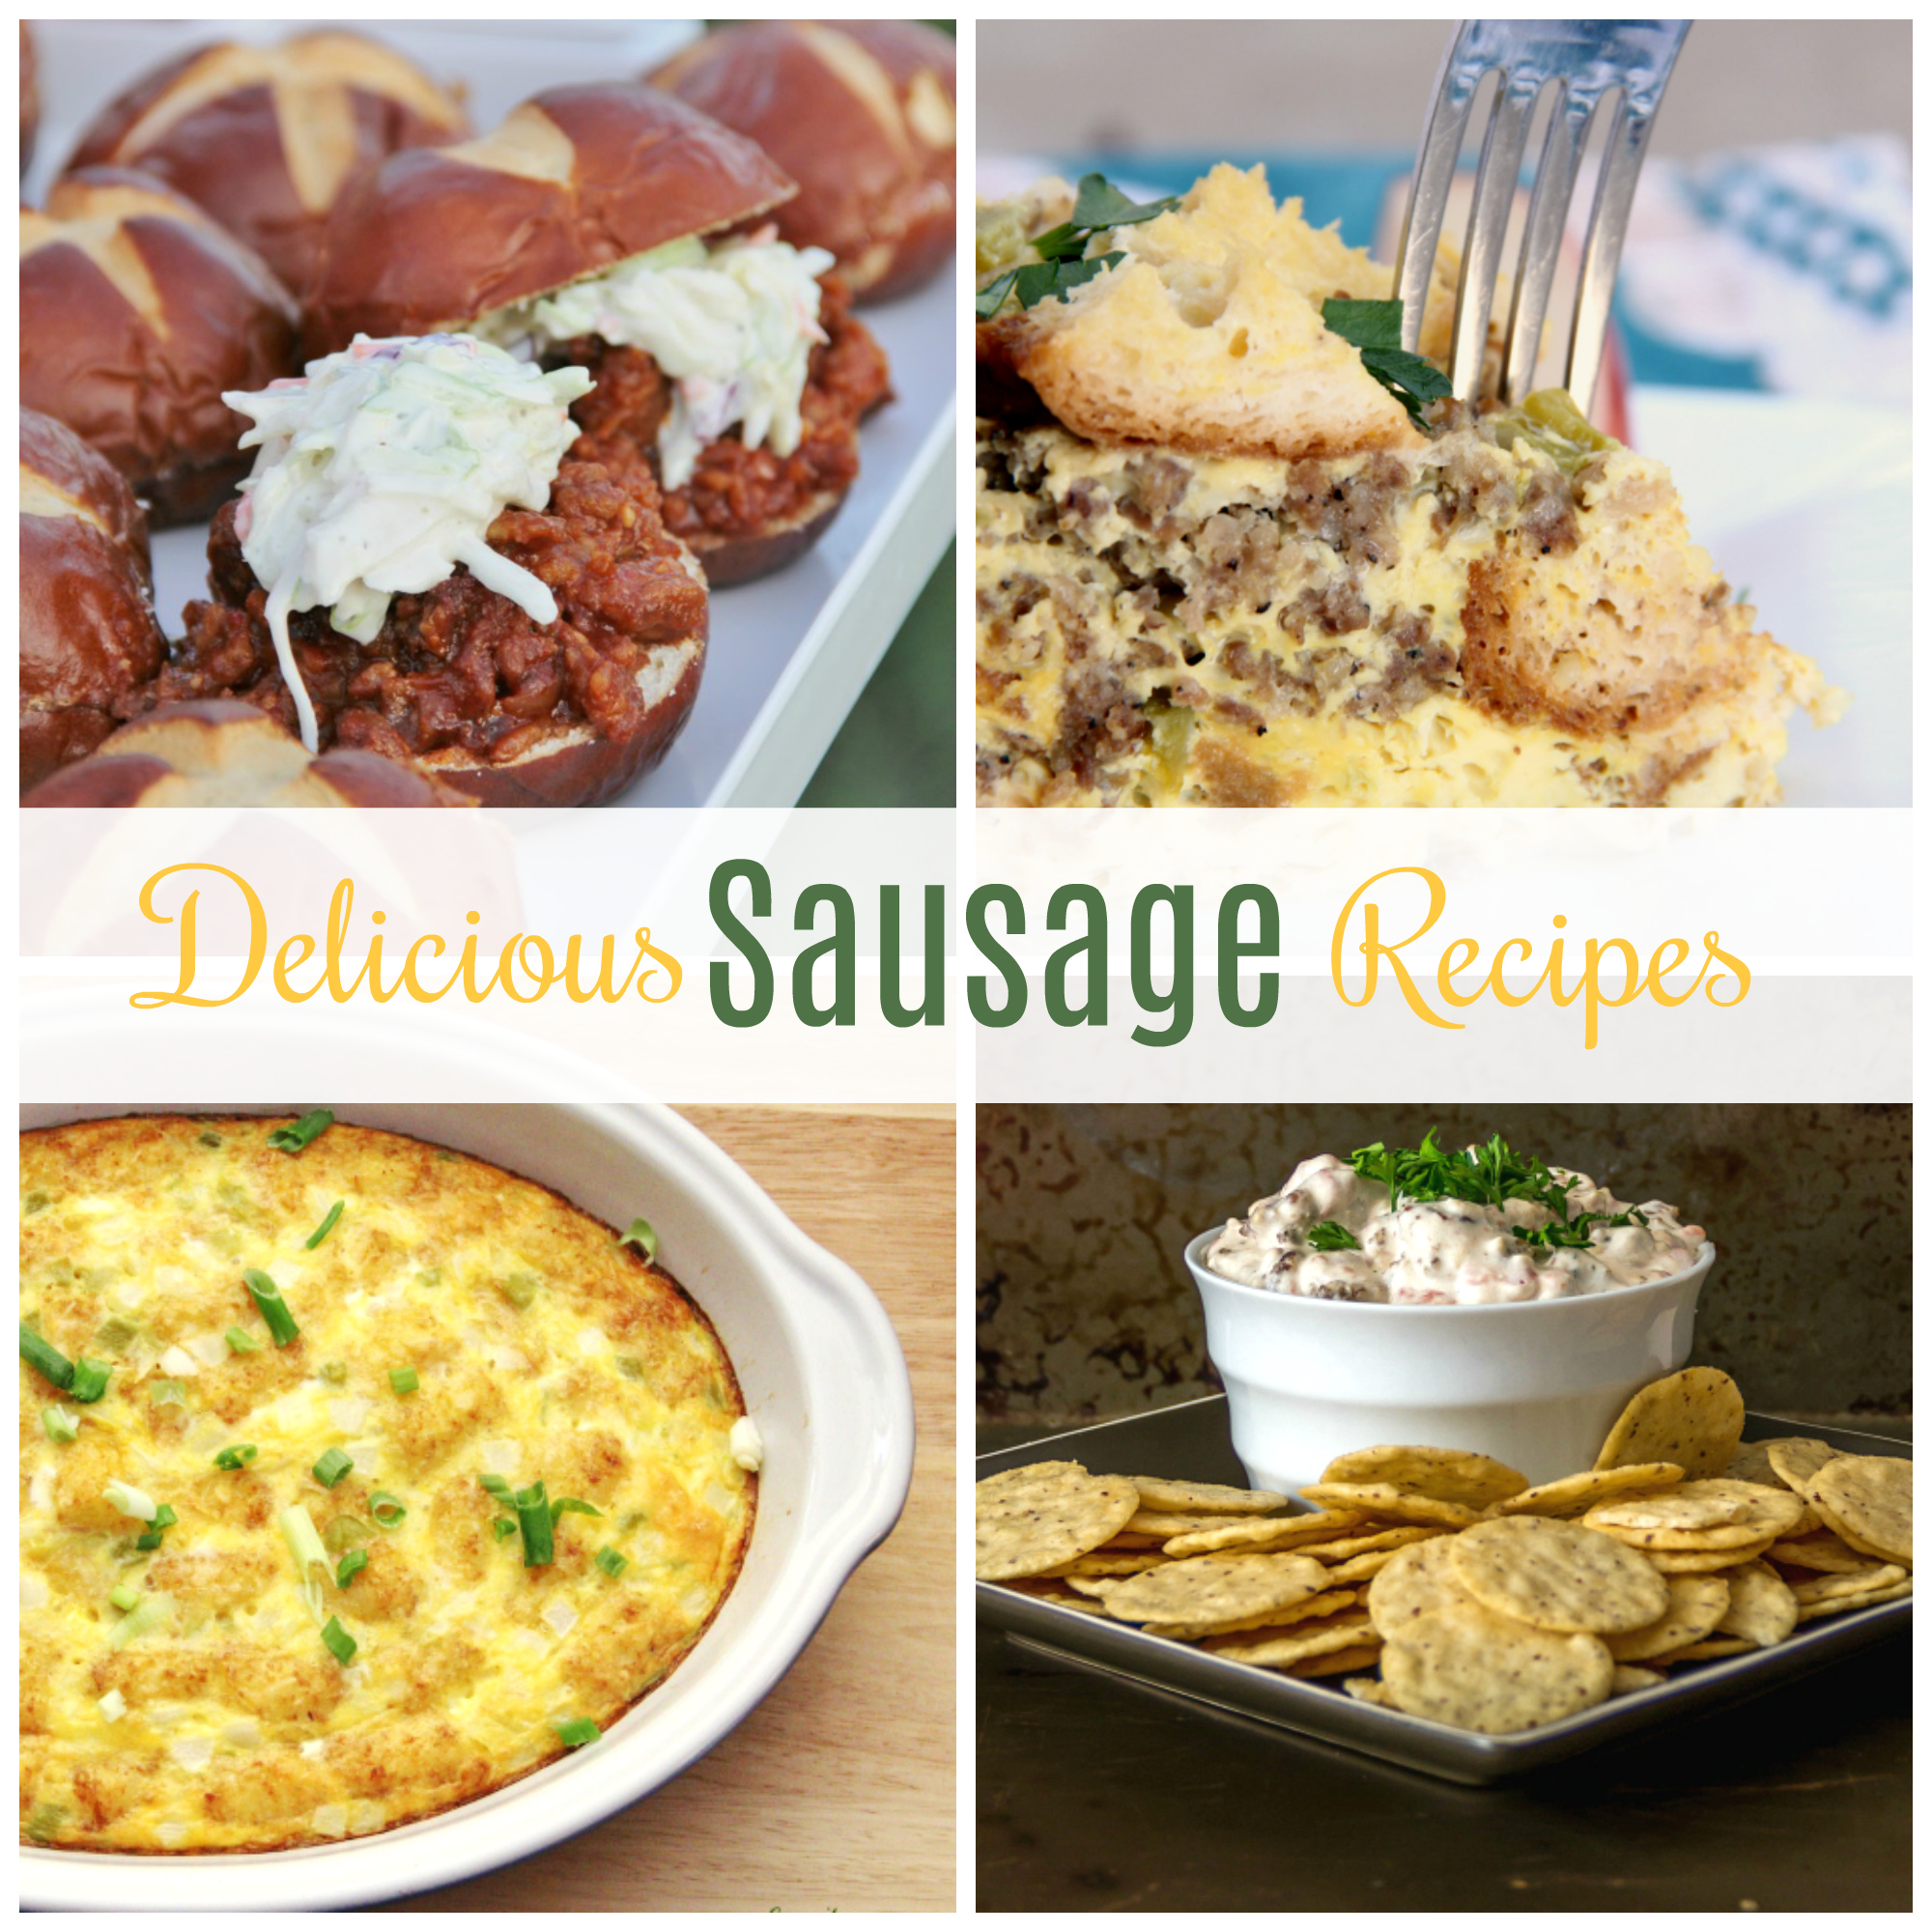 These are my favorite sausage recipes for breakfast, lunch, and dinner.  Love this collection of Delicious Sausage Recipes.